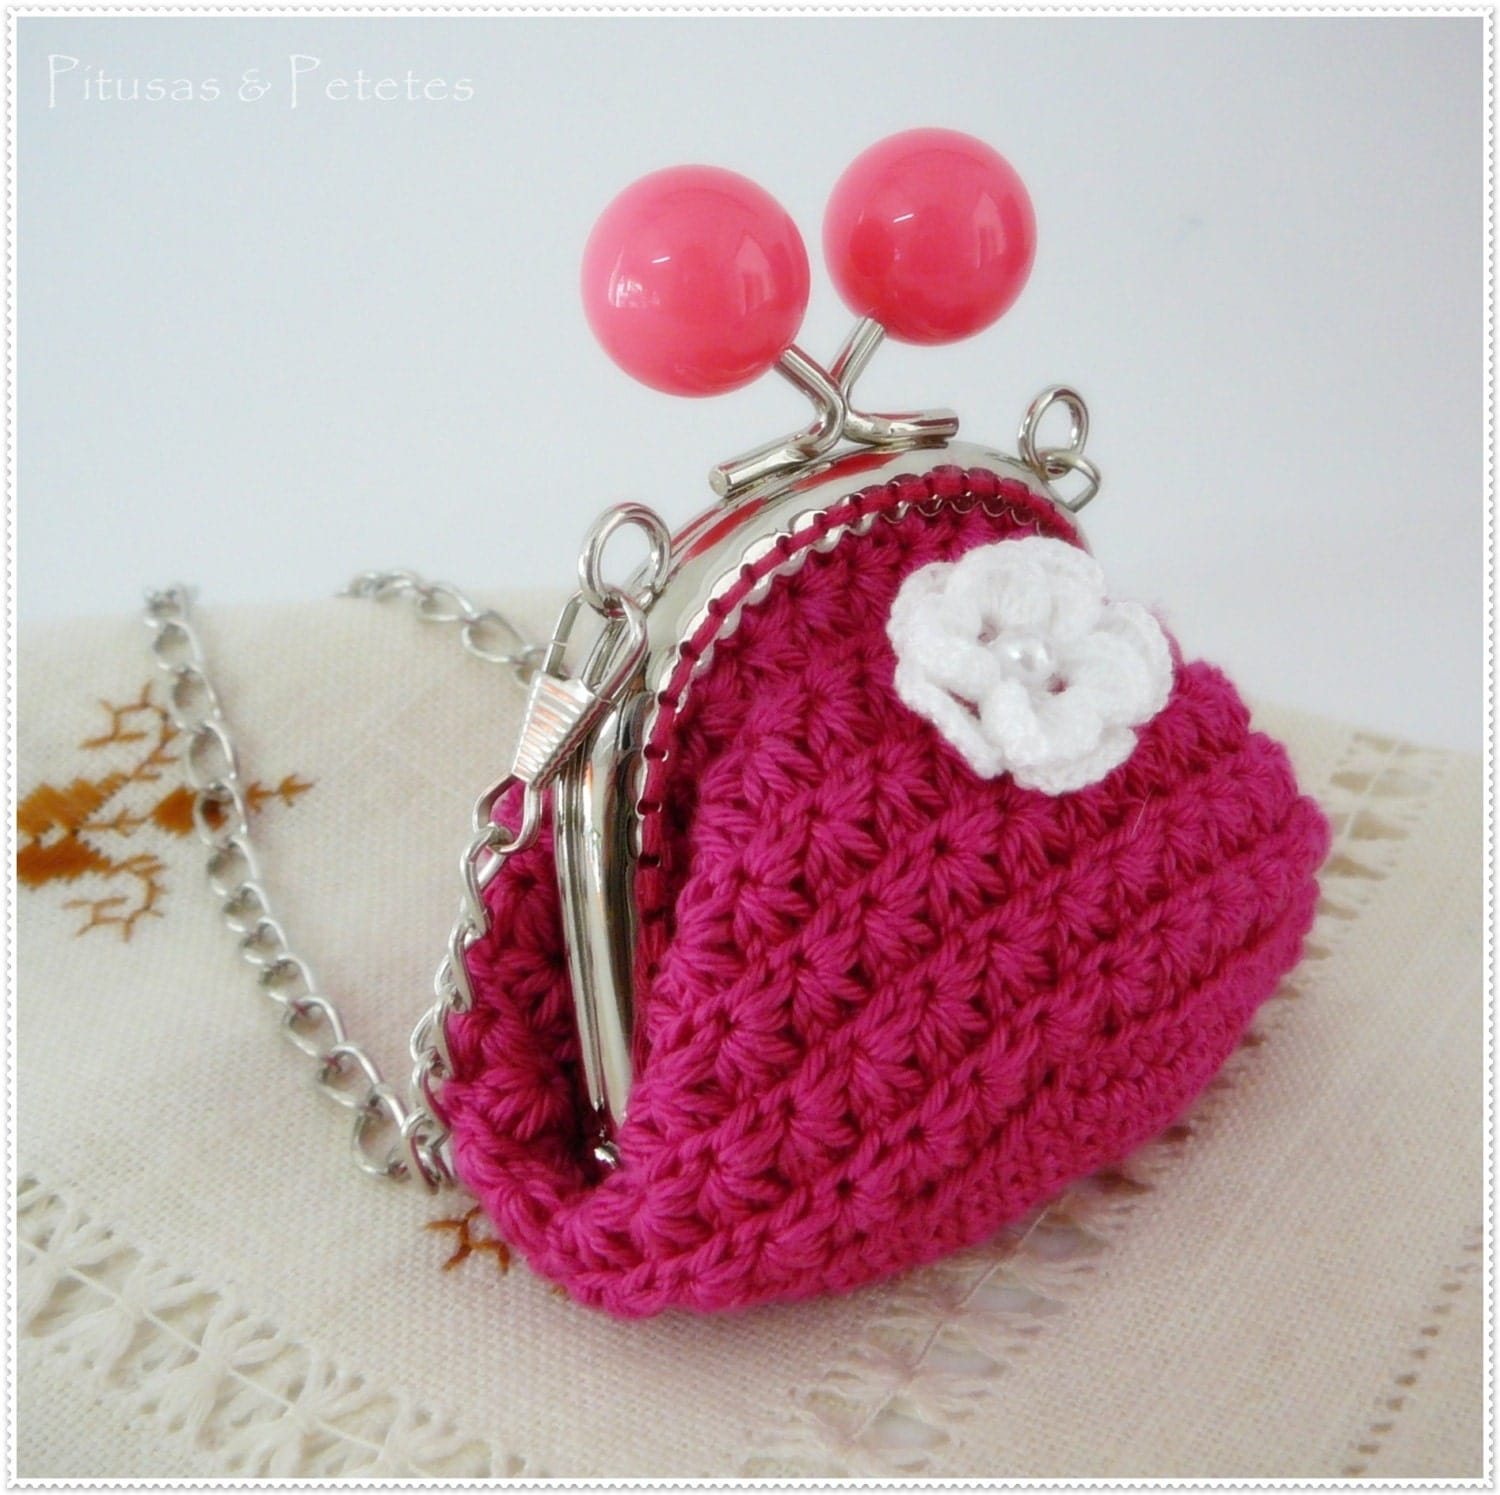 Items similar to Crochet coin purse on Etsy